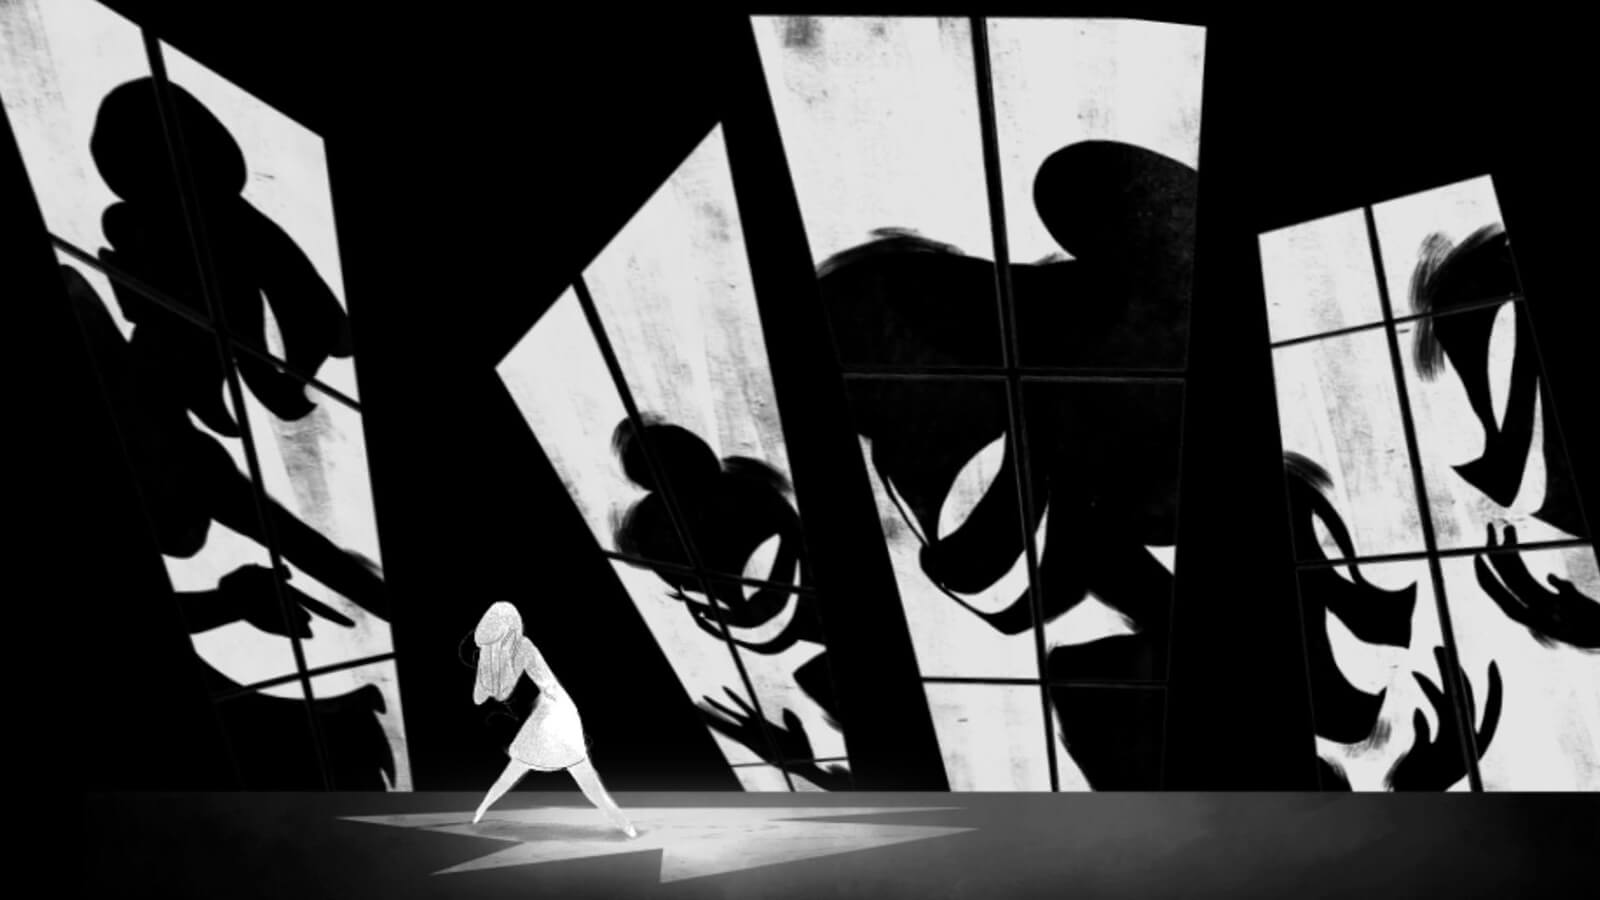 Shadows of judgmental, scowling figures superimposed over large deformed windows surround the colorless form of a cowering young woman.